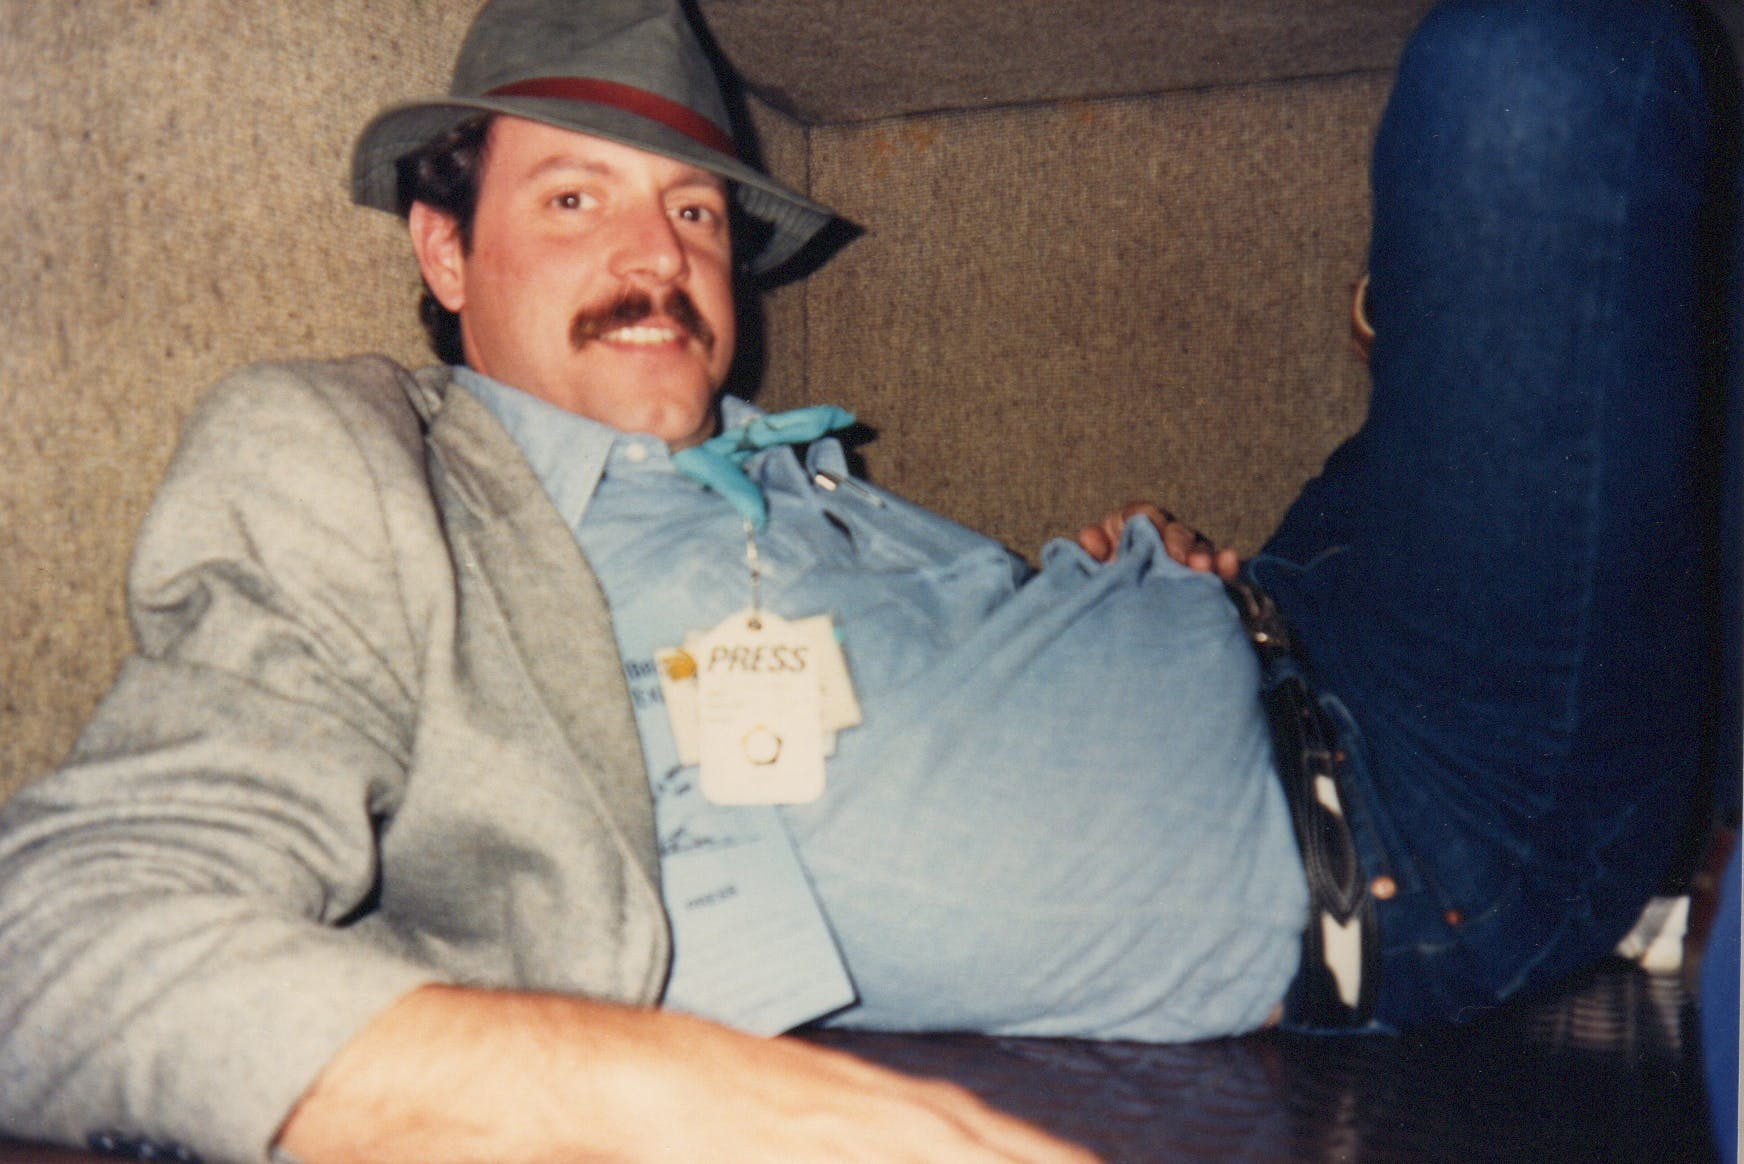 R.G. Ratcliffe hanging out in the luggage compartment of a train during the 1988 Michael Dukakis campaign for president.